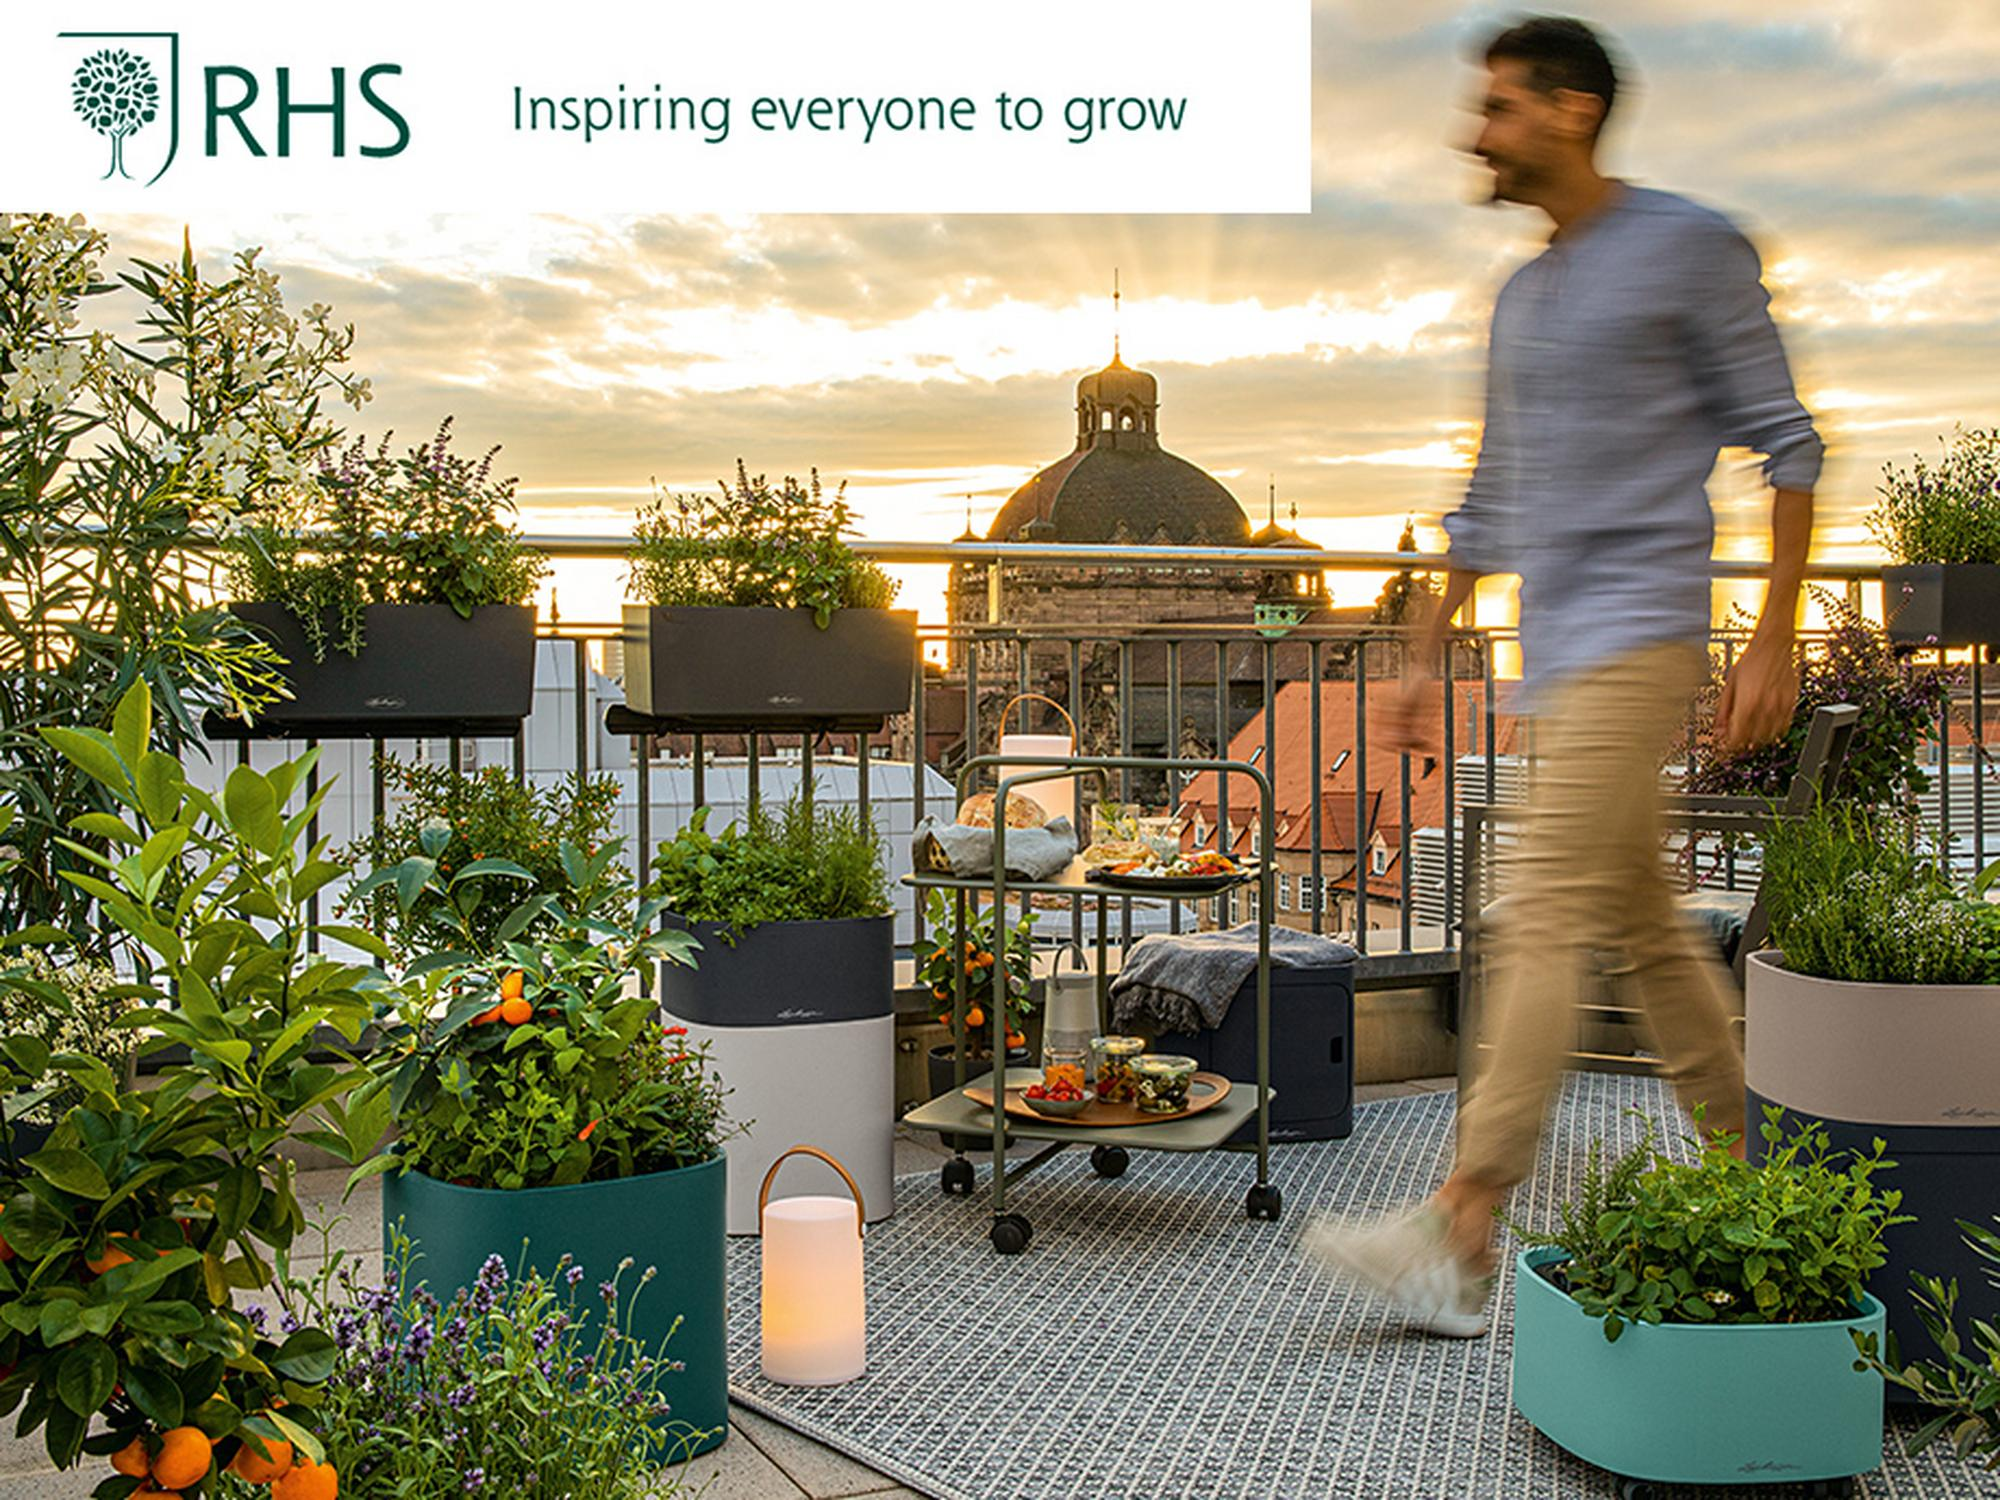 Visit us on stand HC441 - RHS Hampton Court Palace Garden Festival - 6-11th July